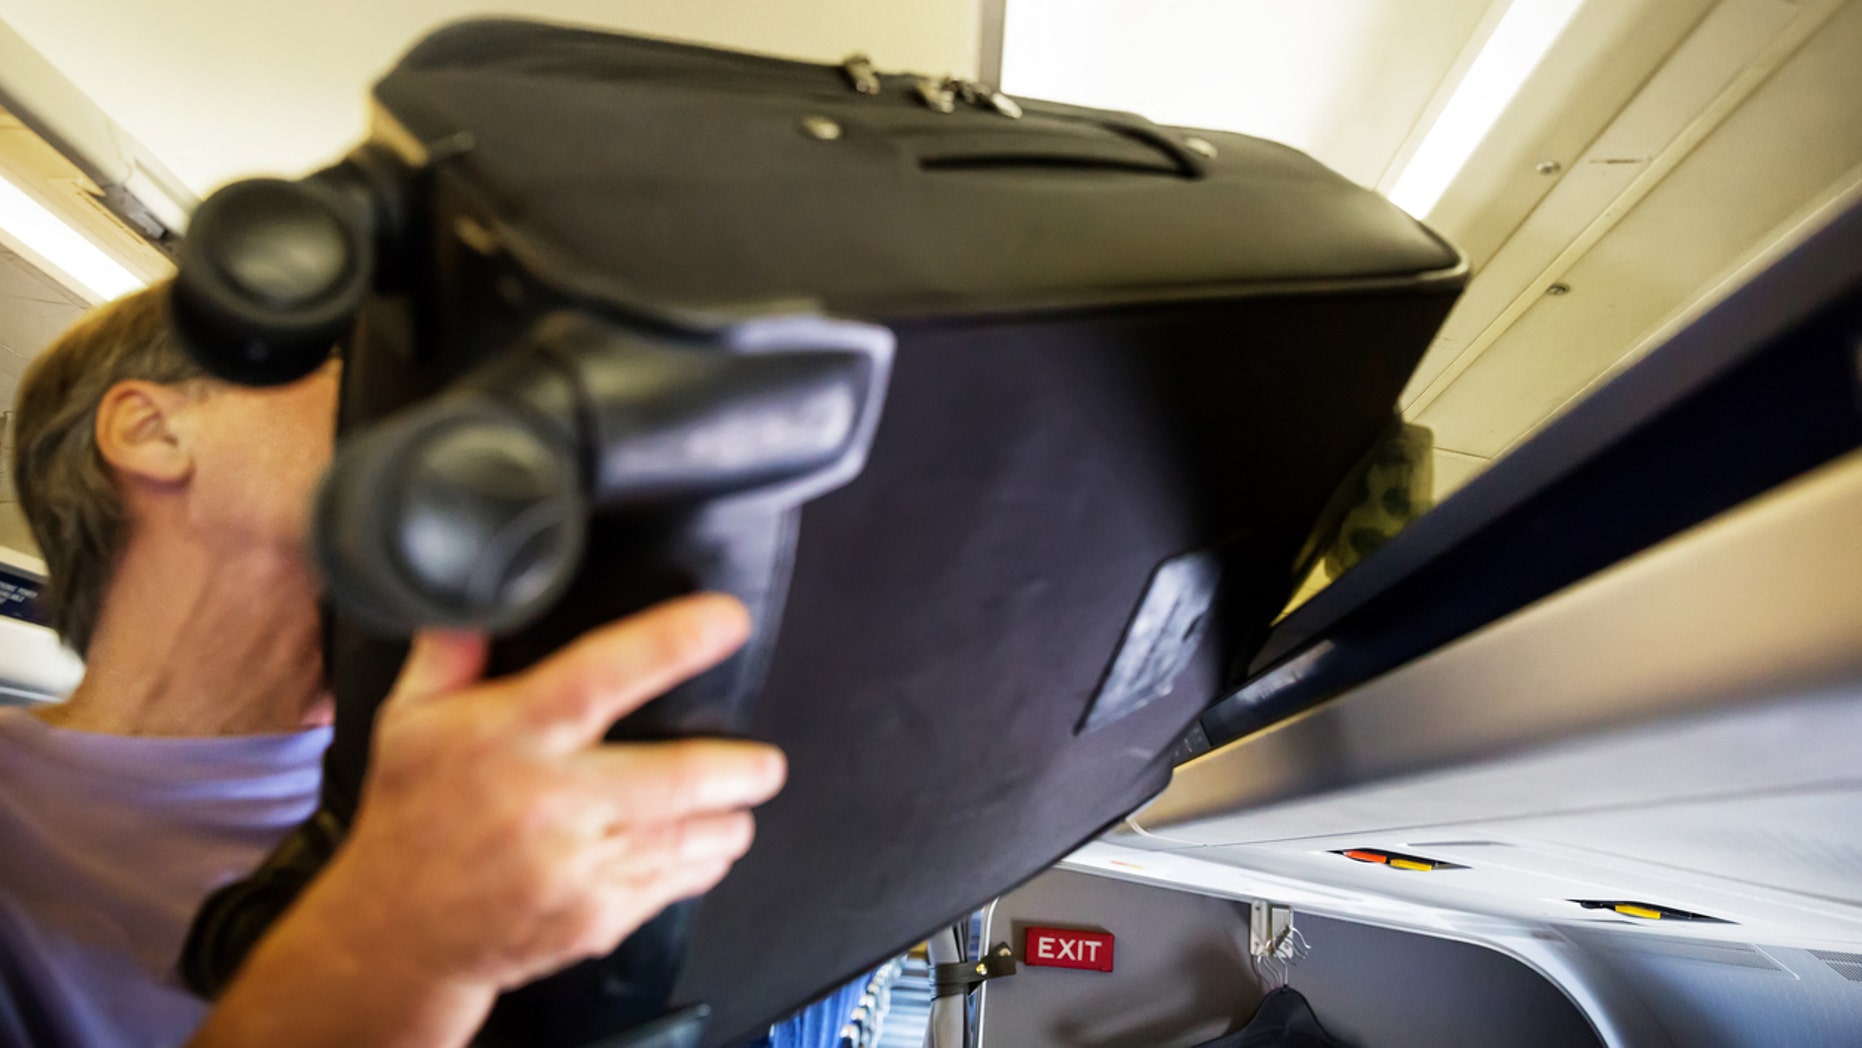 In the viral video, an unidentified passenger is seen struggling to push his suitcase into the overhead bin.